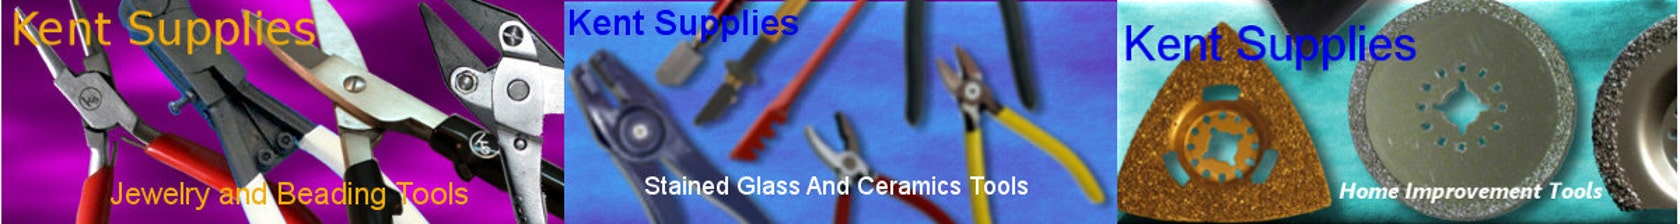 Great Starter Set for Stained Glass Art 4 Pliers and 3 Cutters KENT 7 pcs Set